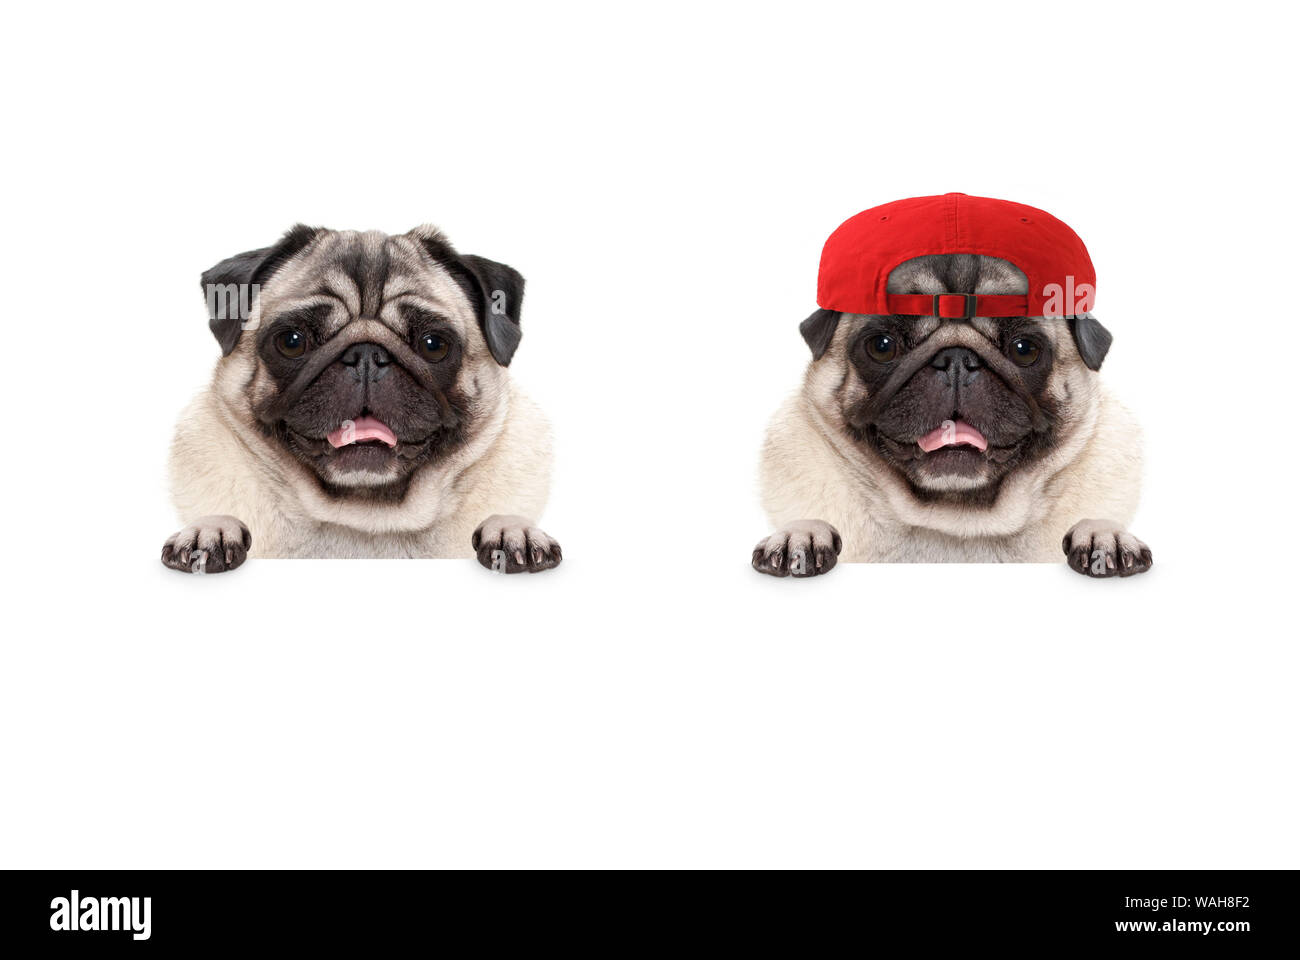 frolic smiling pug puppy dog wearing red cap hat, with paws on white banner, isolated Stock Photo